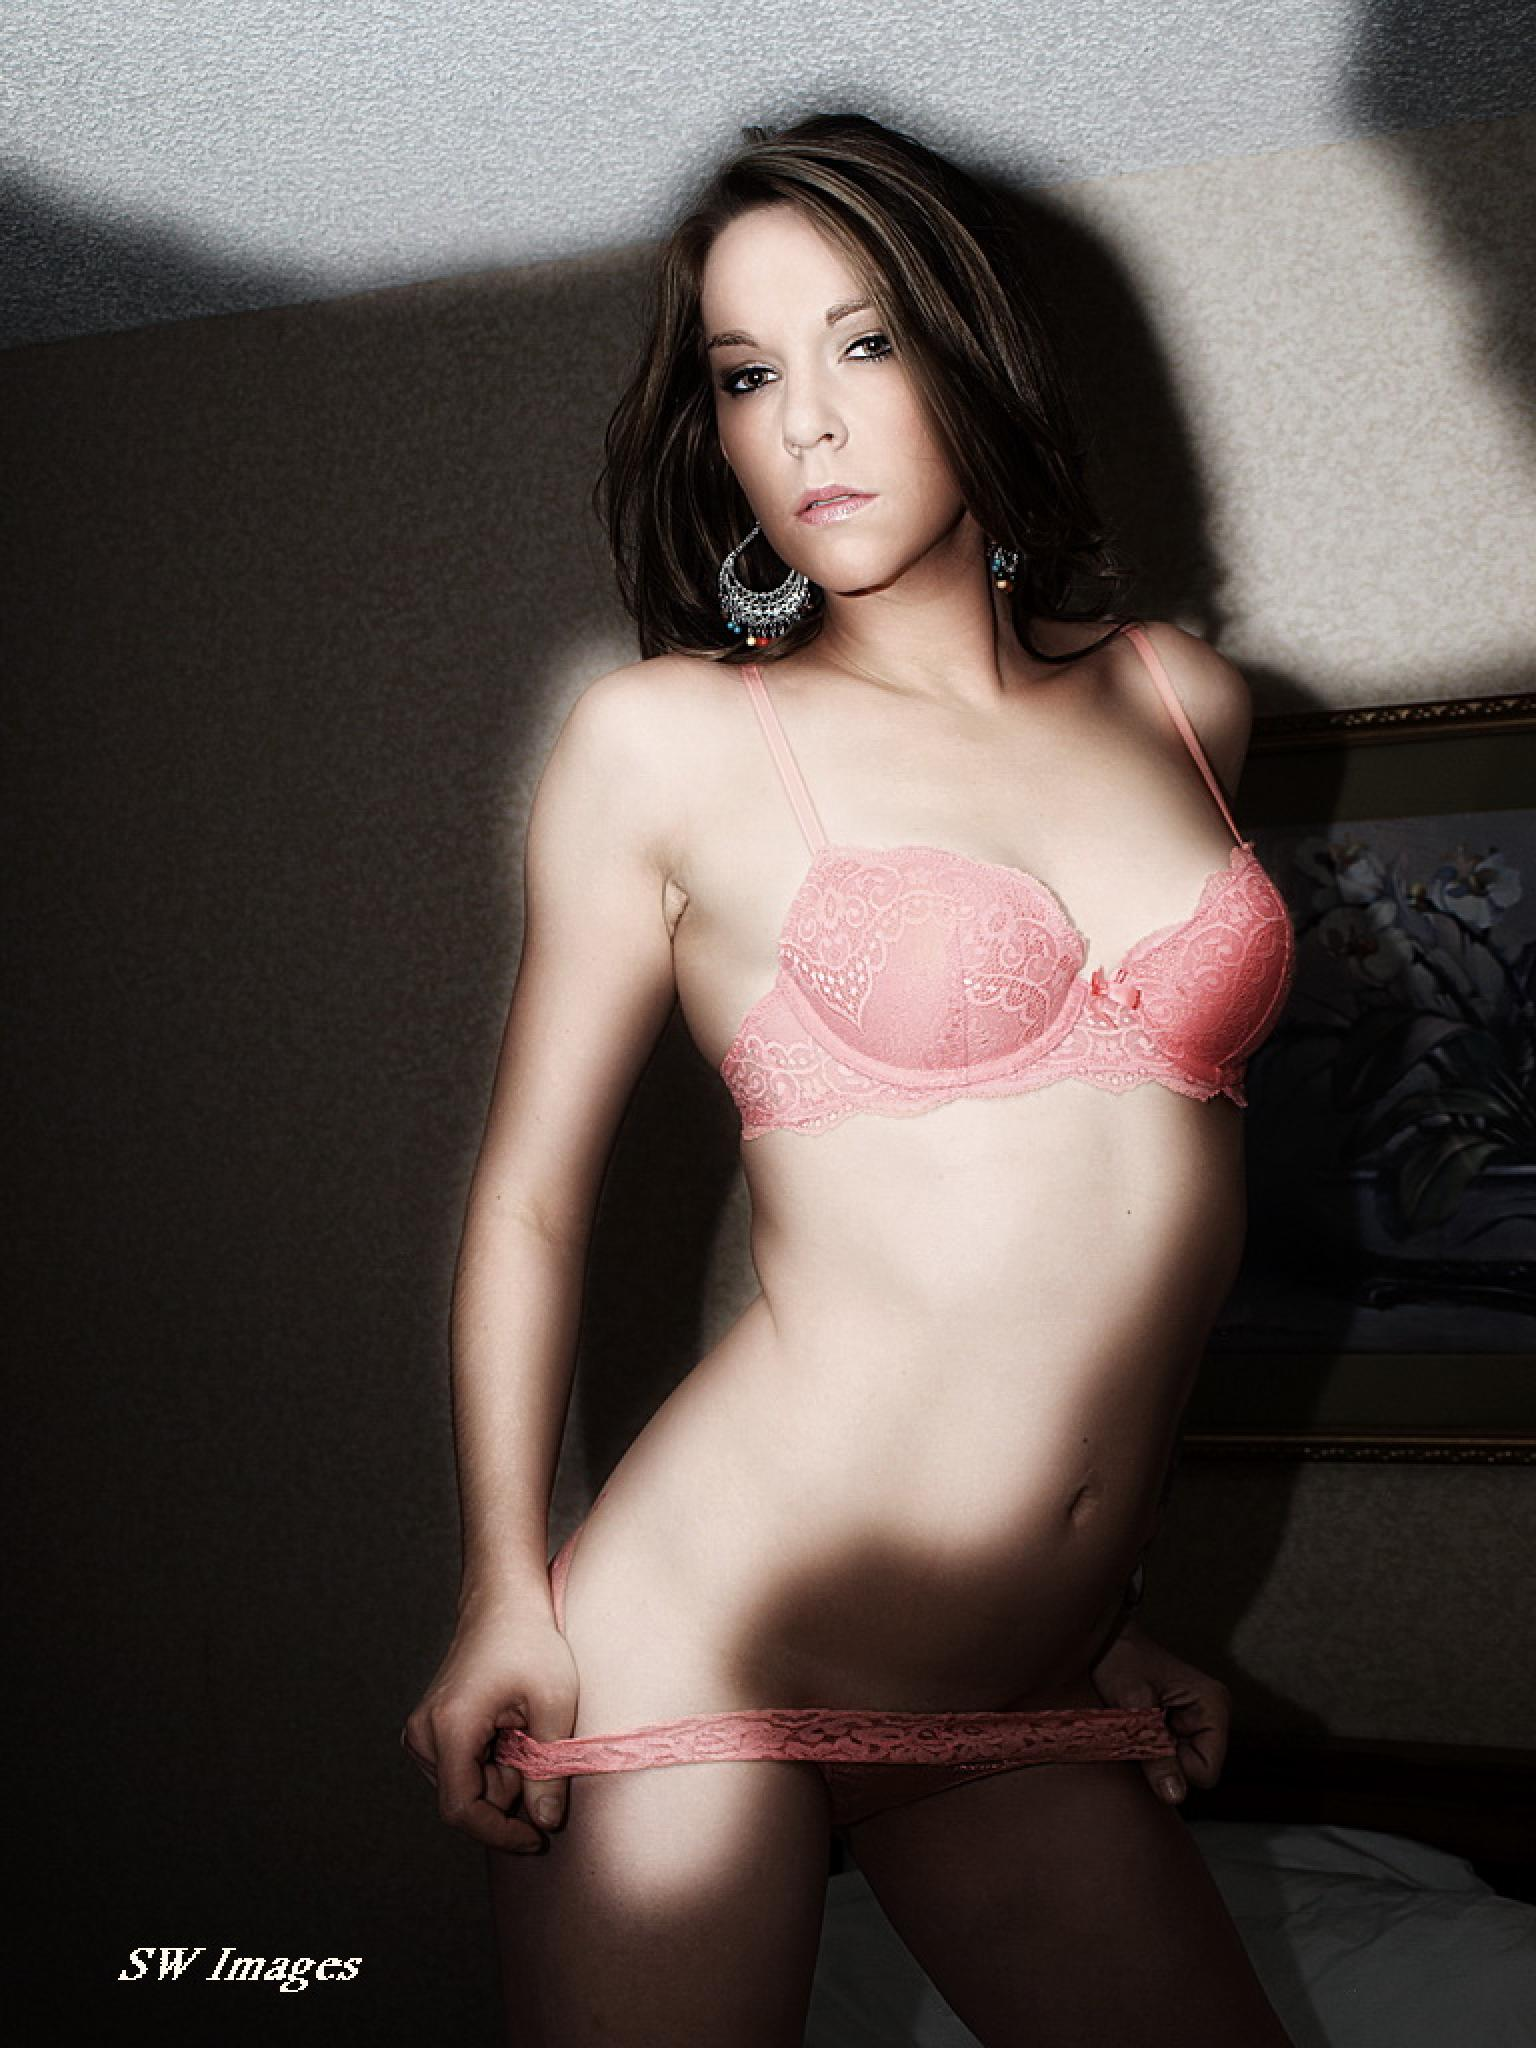 Bra and Panties by swhiteimages